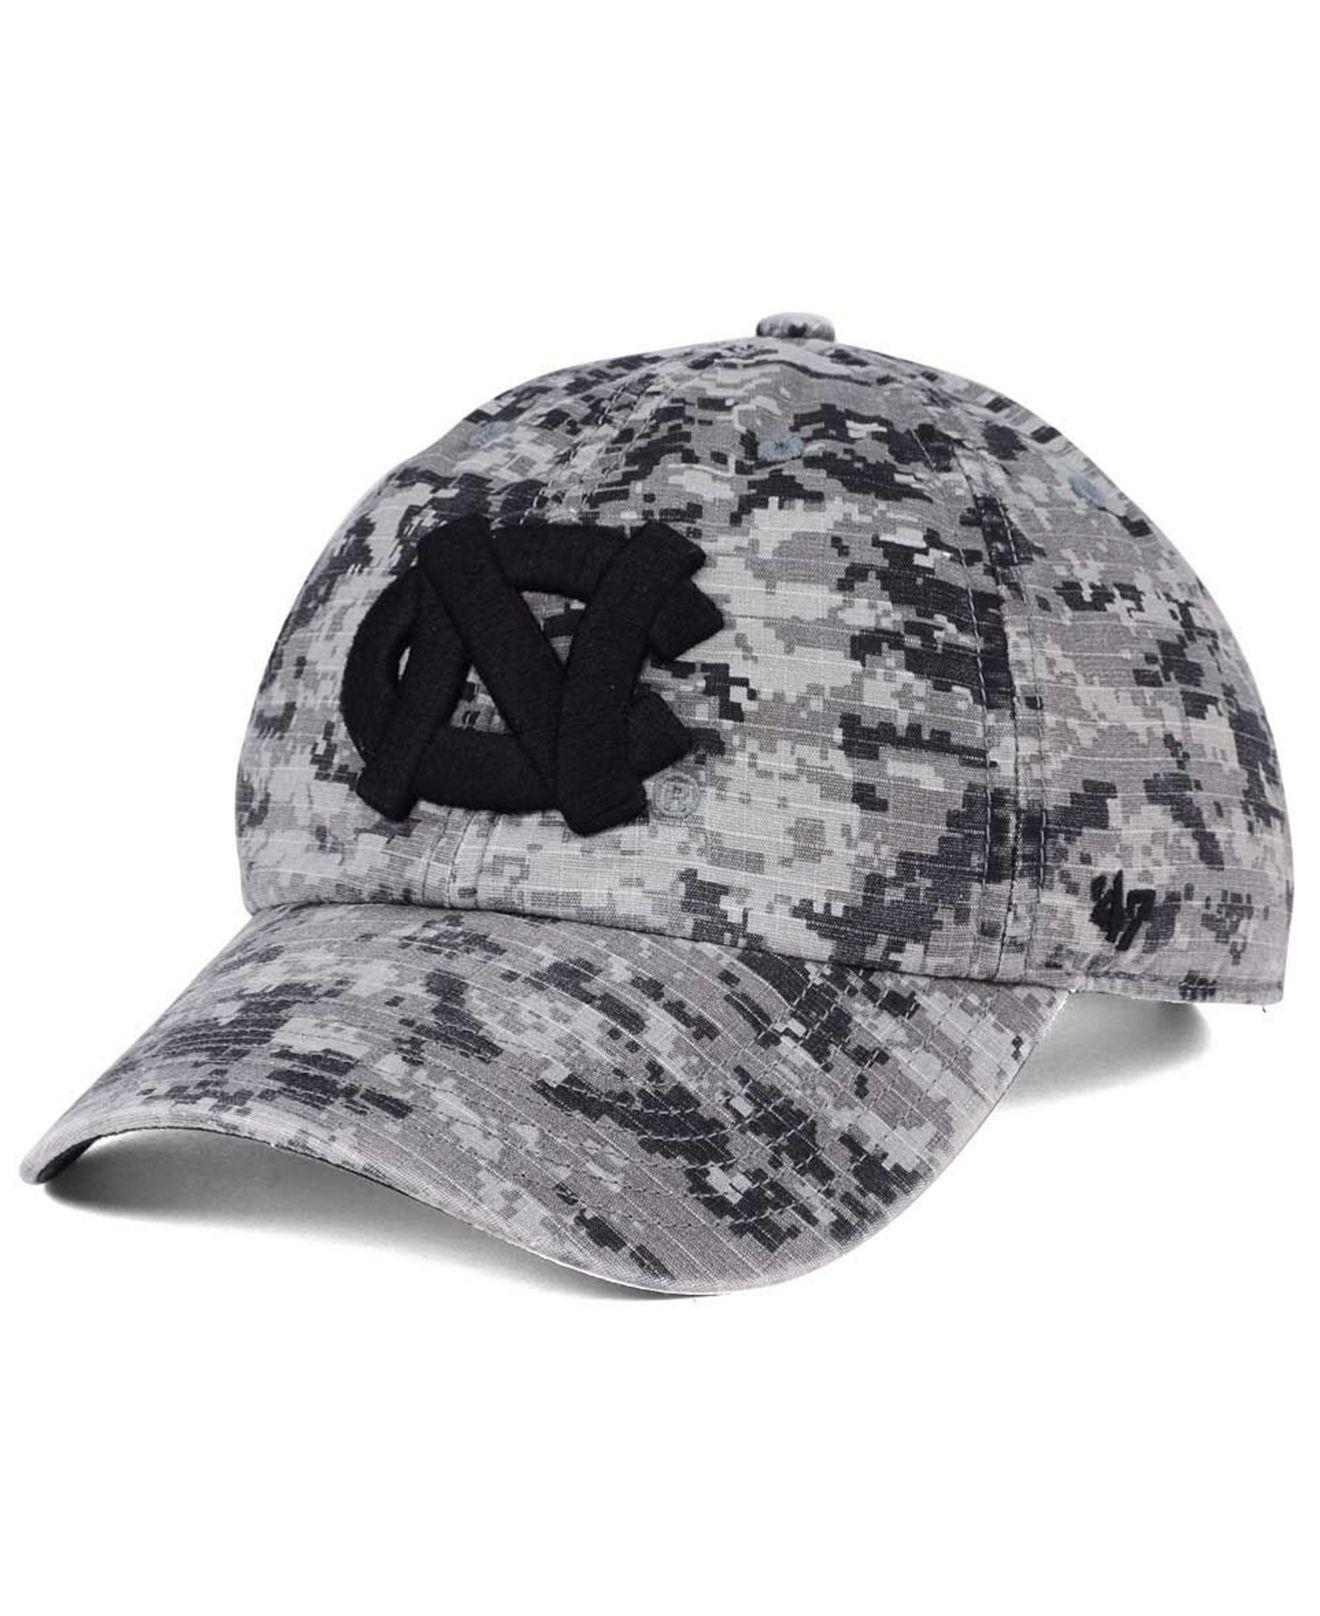 eb45b07a22c6b Lyst - 47 Brand Operation Hat Trick Camo Nilan Cap in Gray for Men